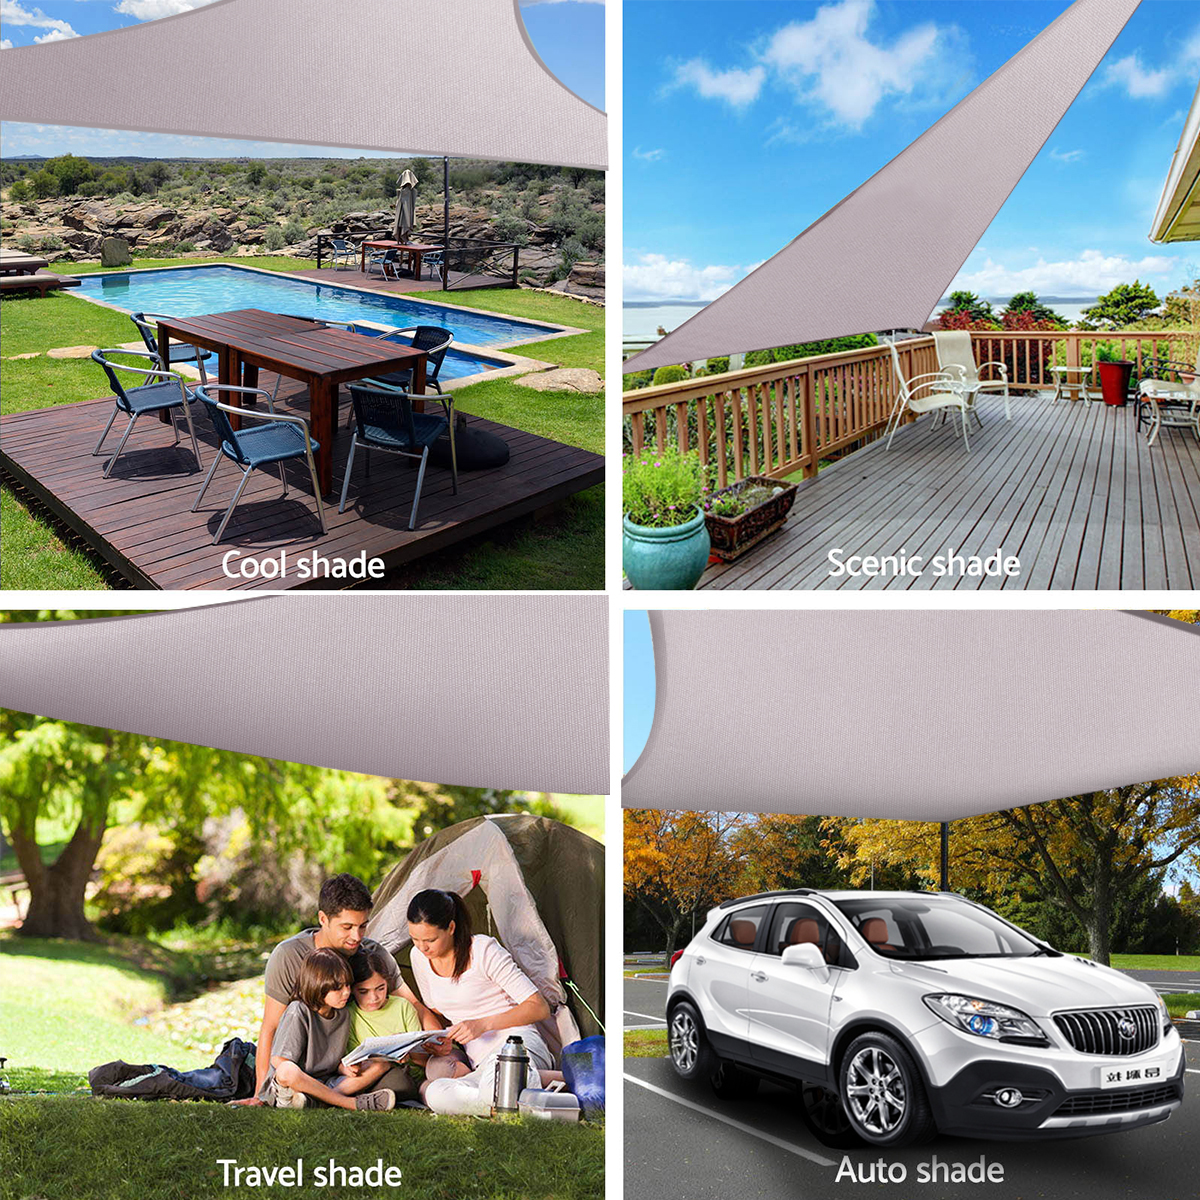 300D 160GSM Sun Shade Sail Waterproof UV Garden Patio Awning Canopy Tent Sunshade Shelter Square Rectangle